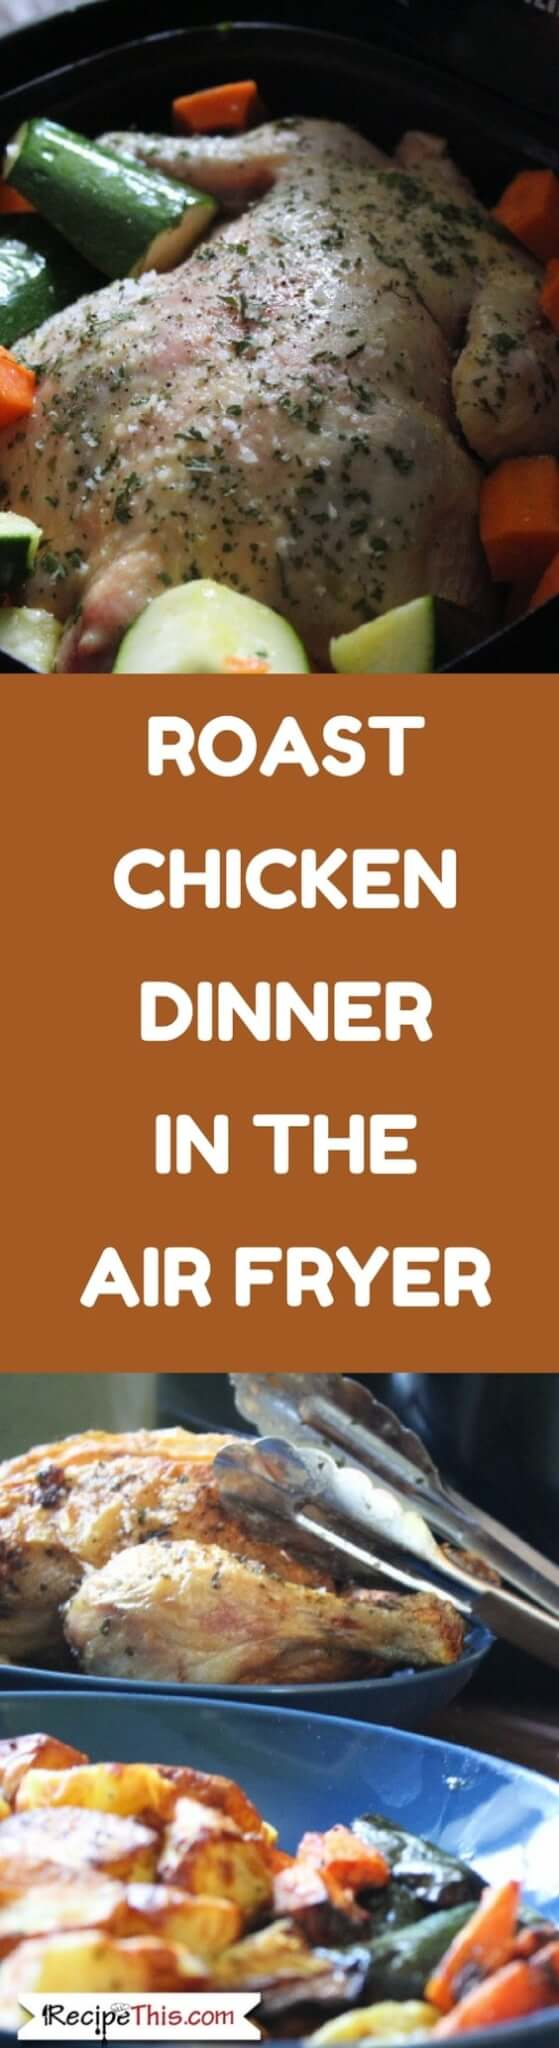 Roast Chicken Dinner In The Air Fryer